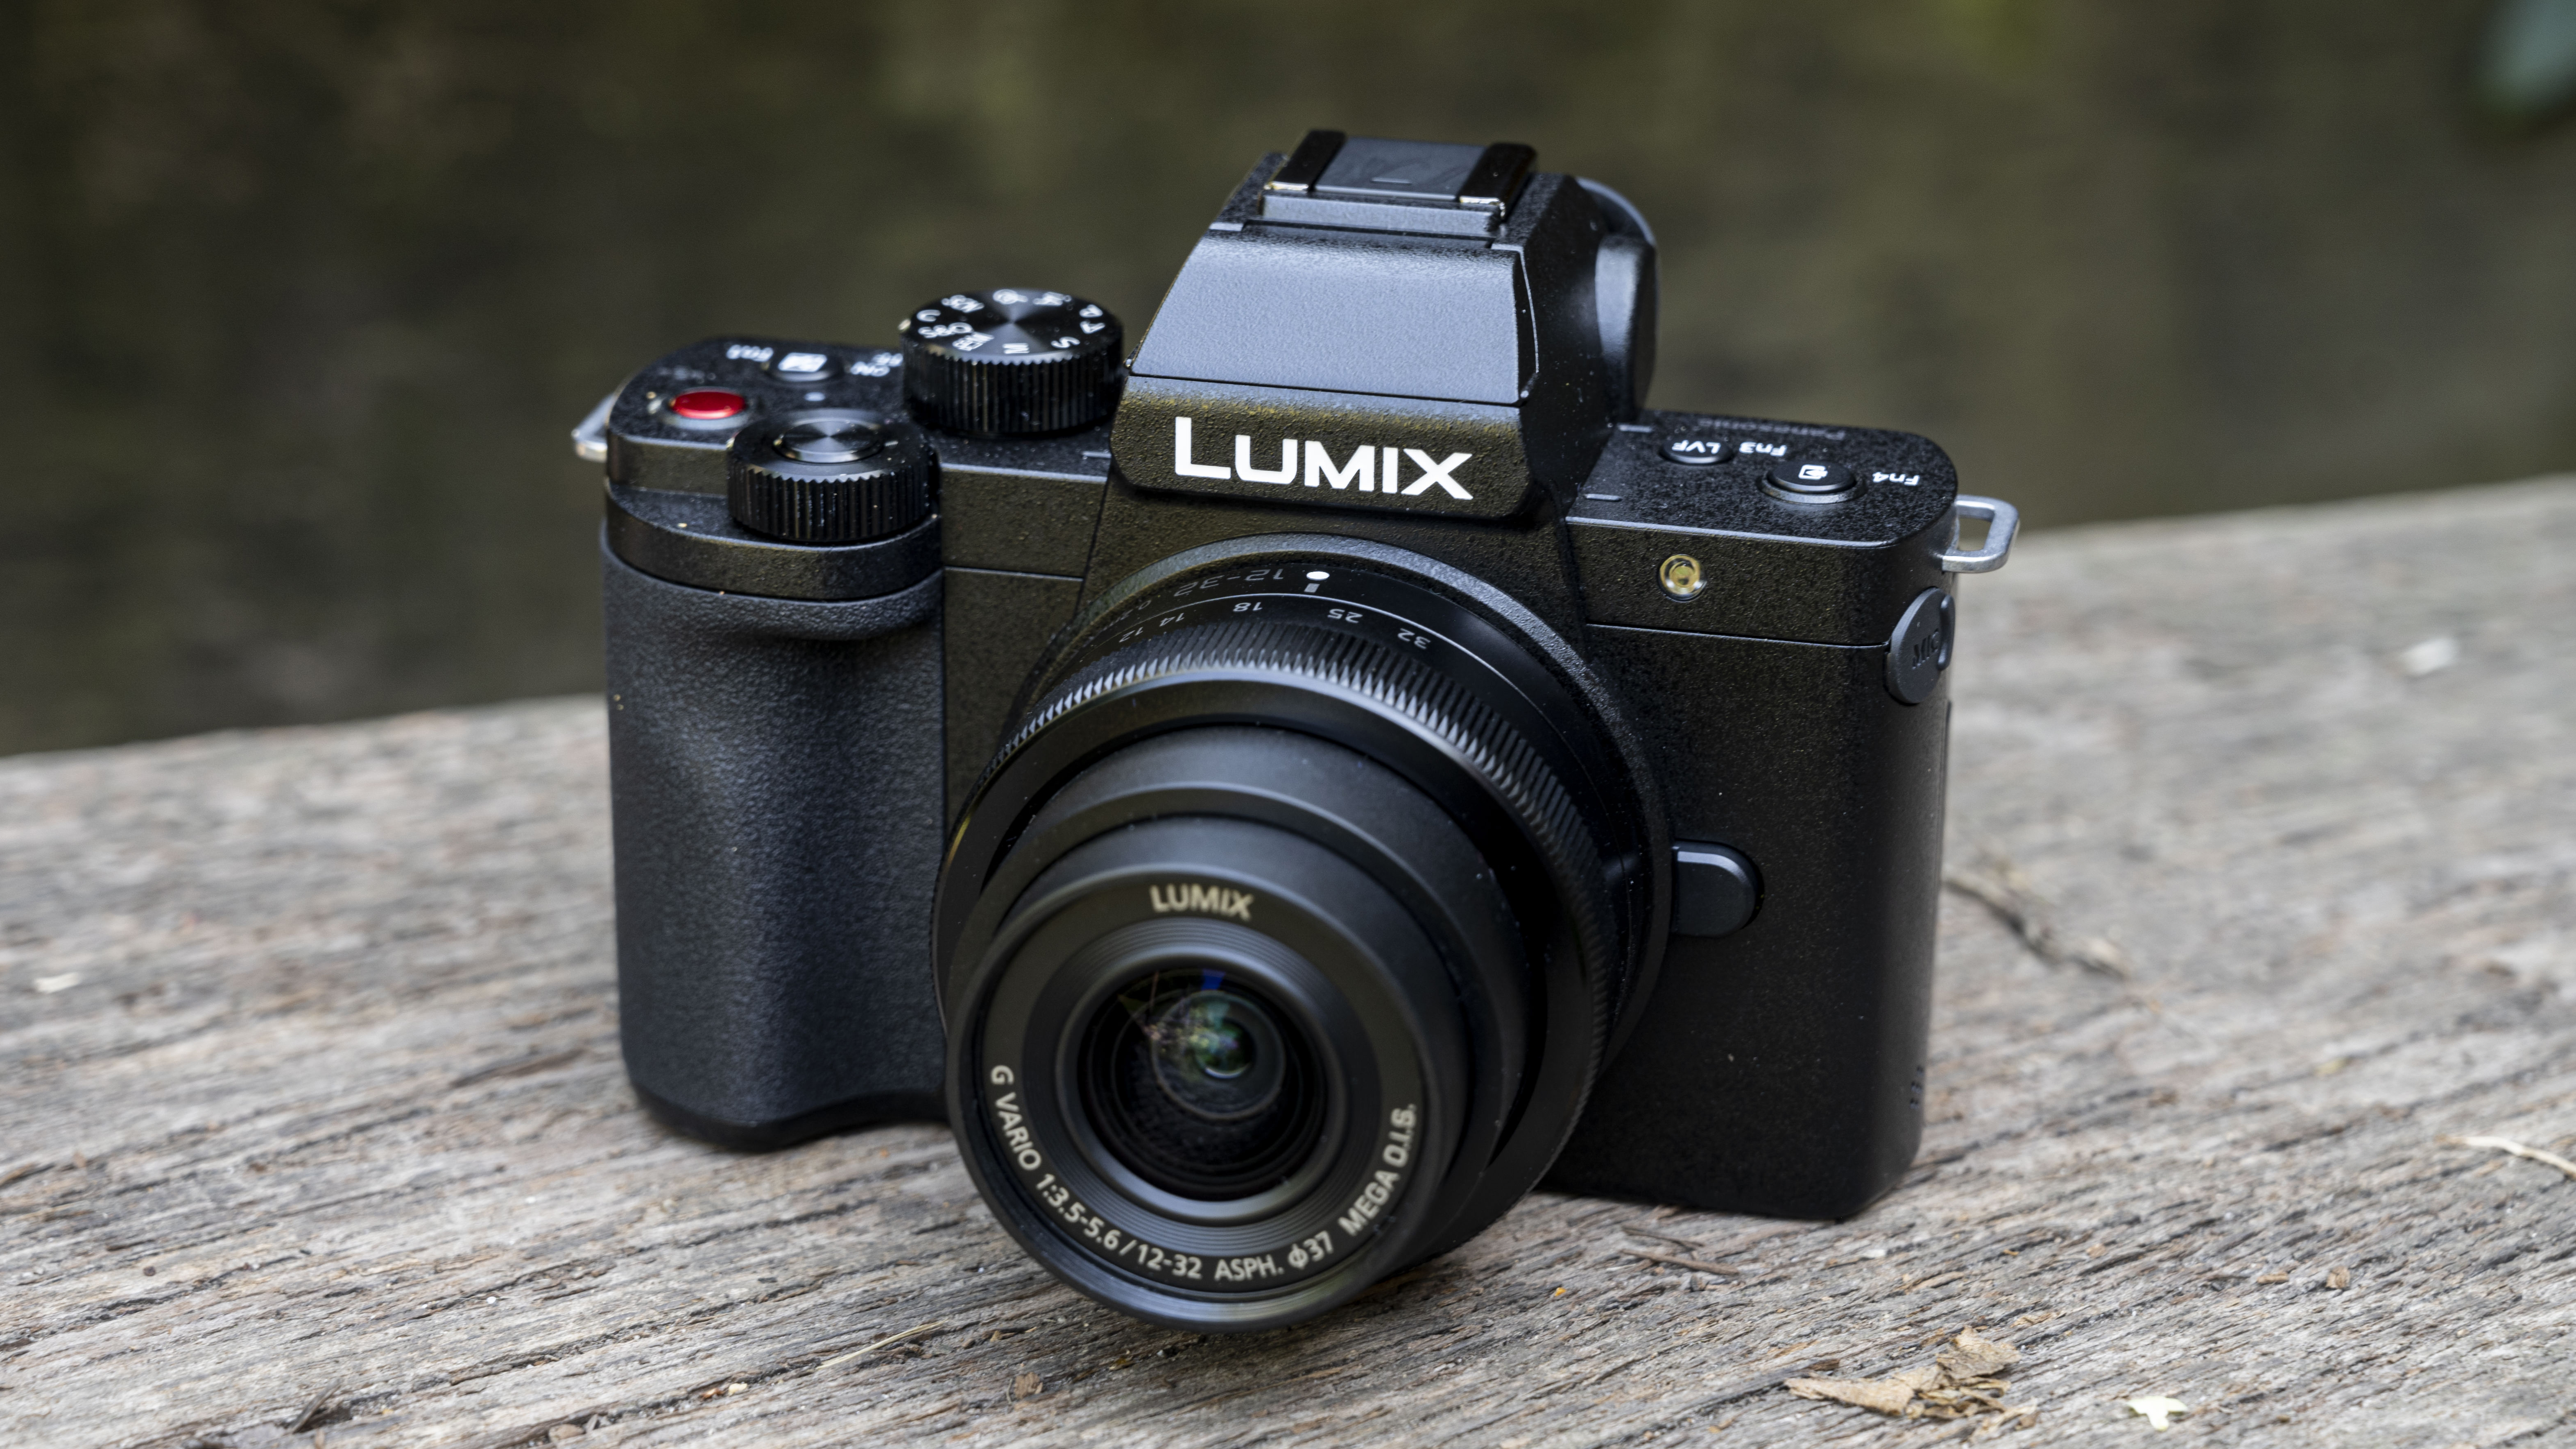 The Panasonic G100 placed on a wooden bench with its 12-32mm lens